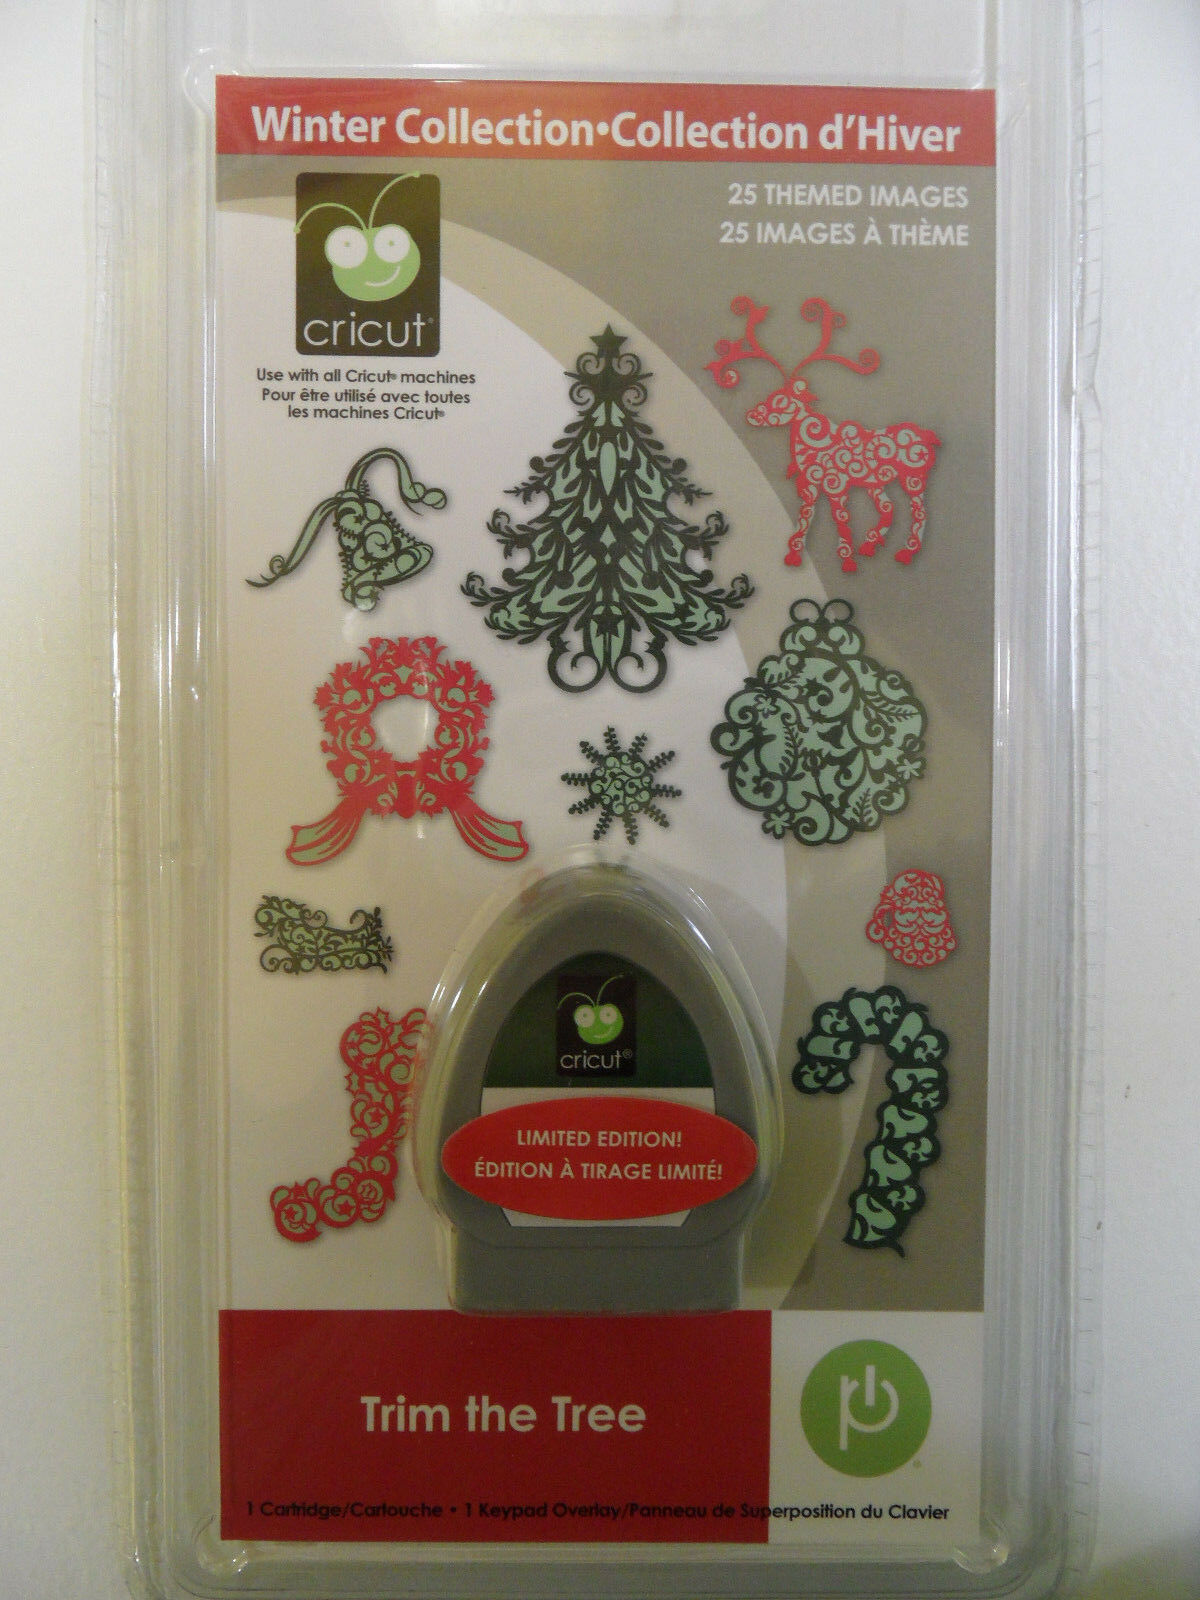 NEW SEALED WINTER COLLECTION TRIM THE TREE CRICUT CARTRIDGE DIE 25 THEMED IMAGES